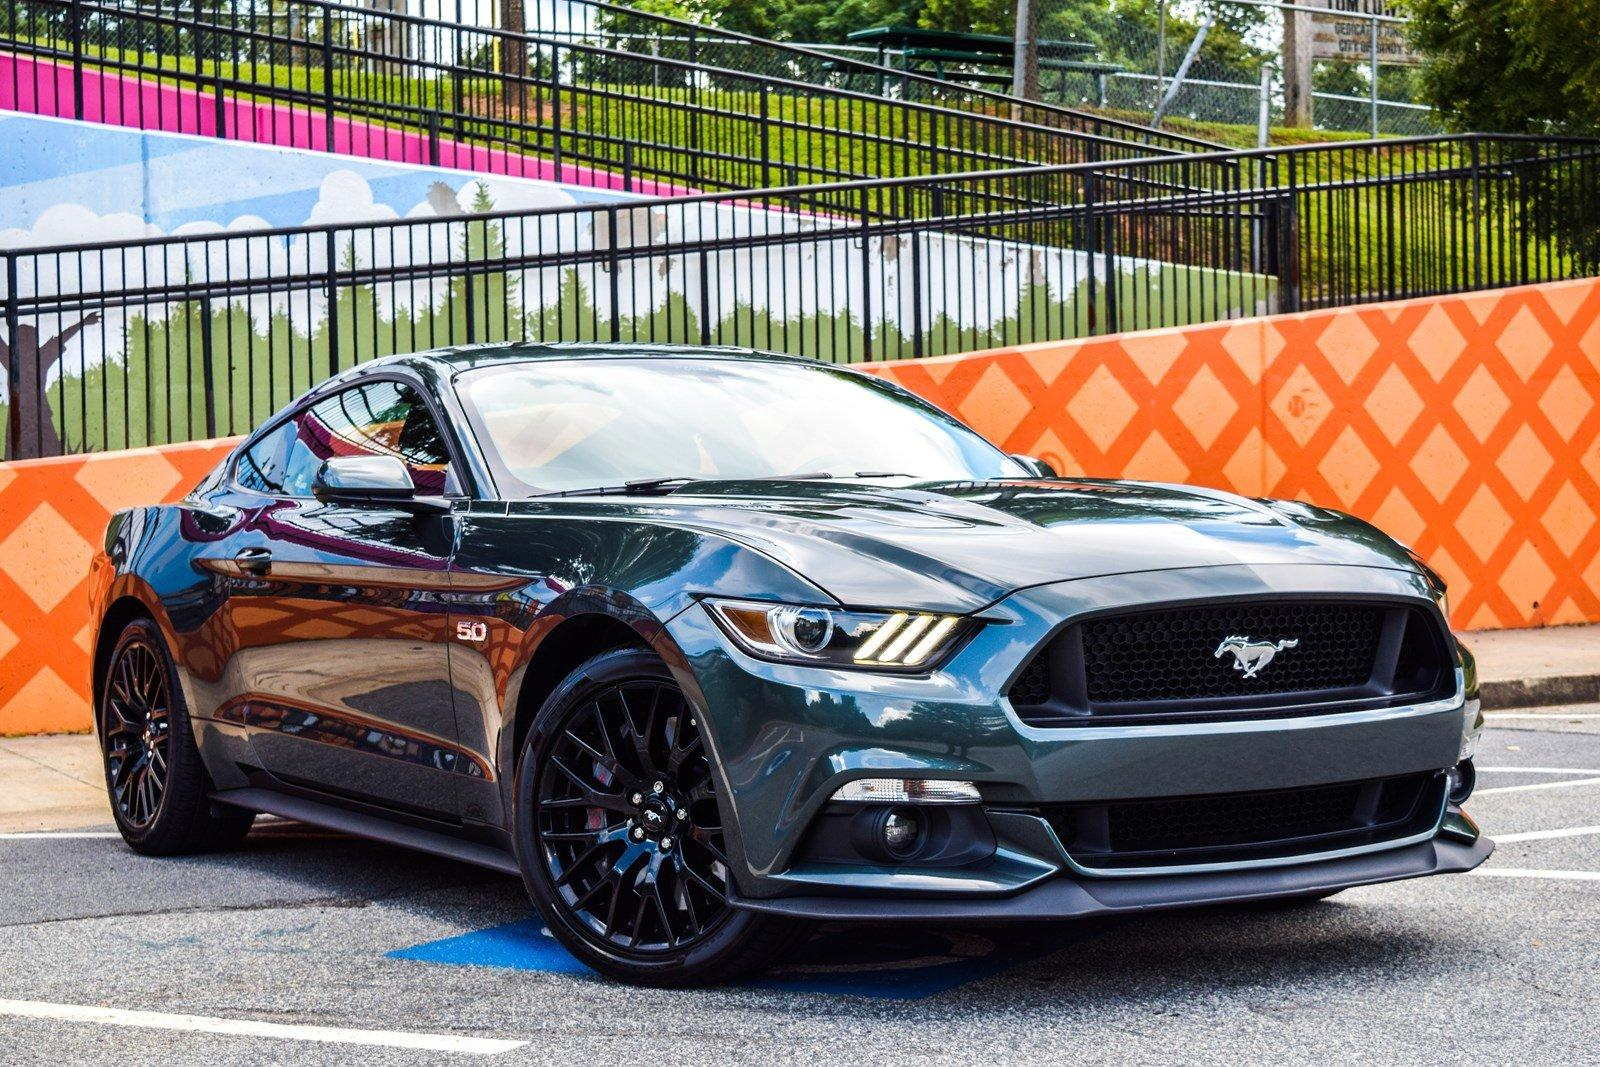 2015 Ford Mustang Gt Stock 406886 For Sale Near Sandy Springs Ga Engine Used